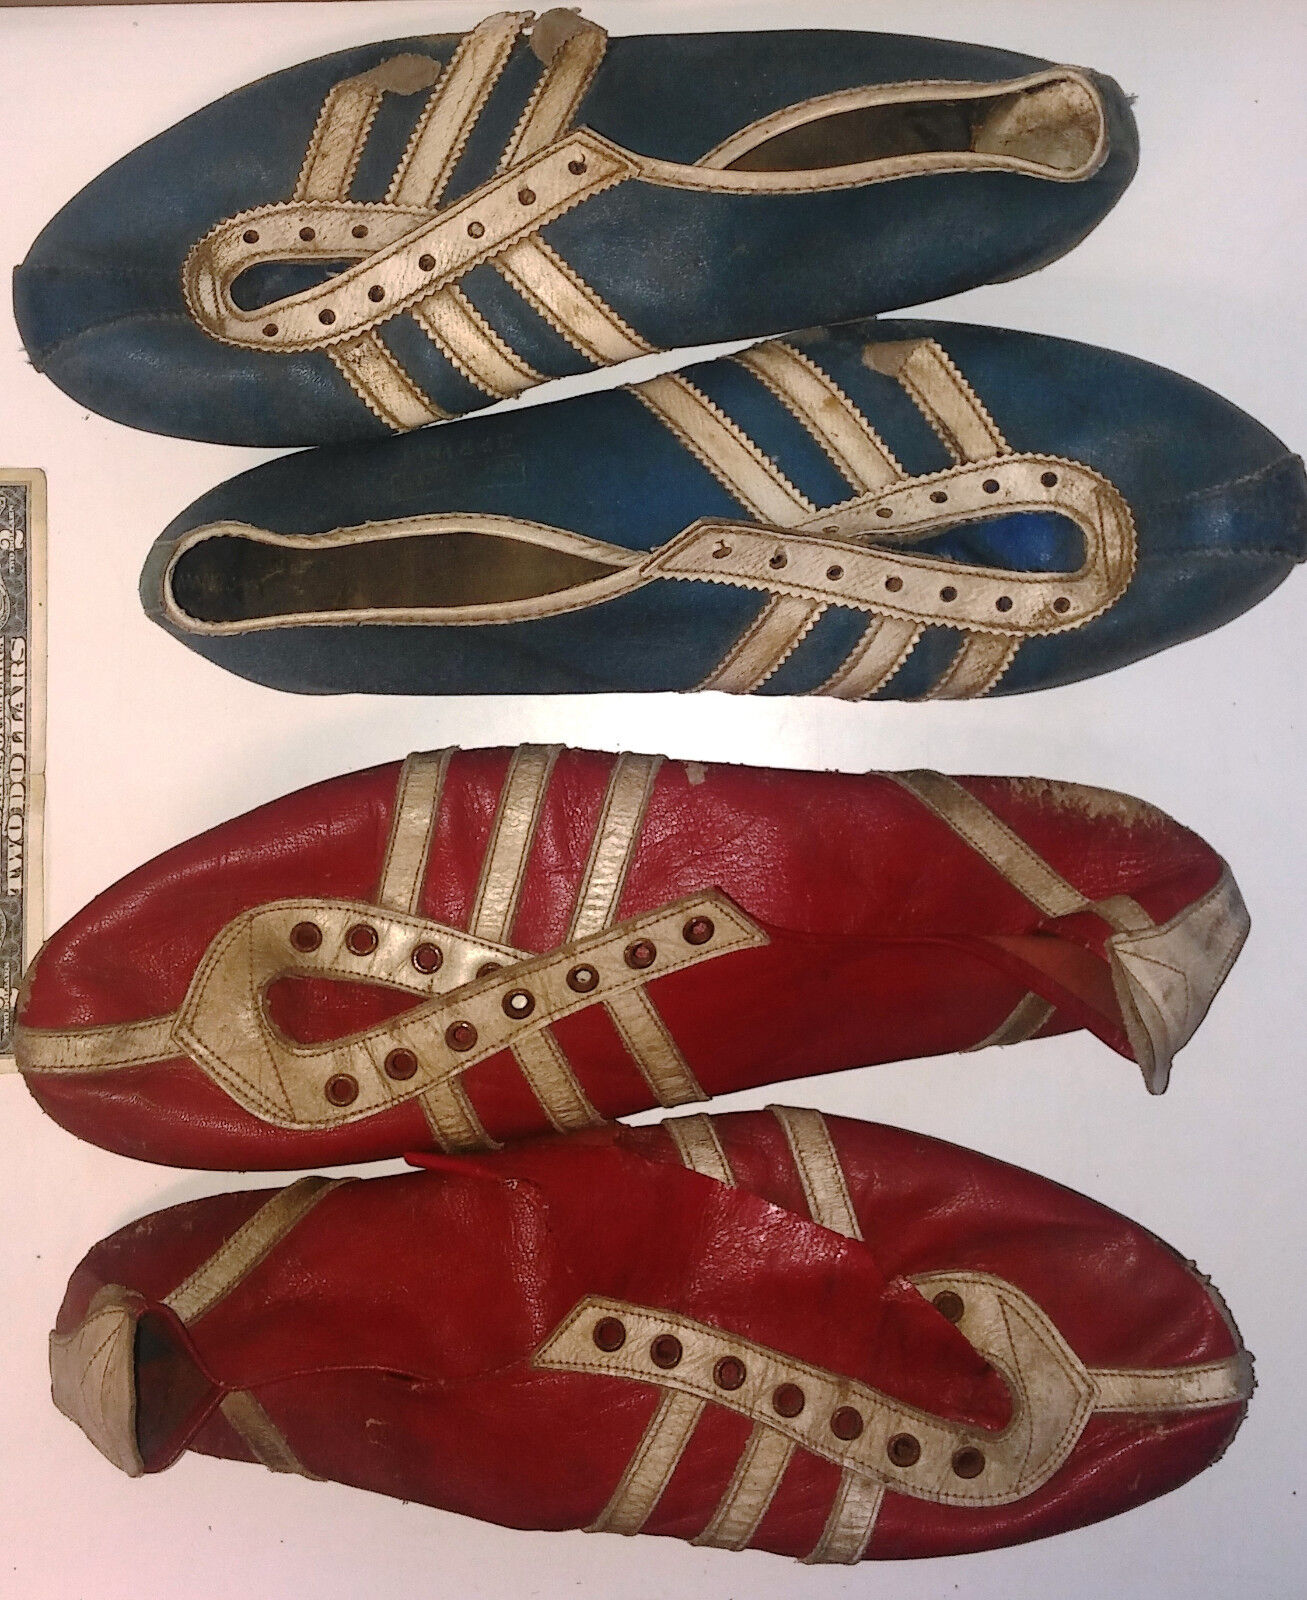 2 VINTAGE TRACK SHOES SOCCER CLEATS SPIKES 70s BLUE ADIDAS SPRINT + RED FRAZZANI